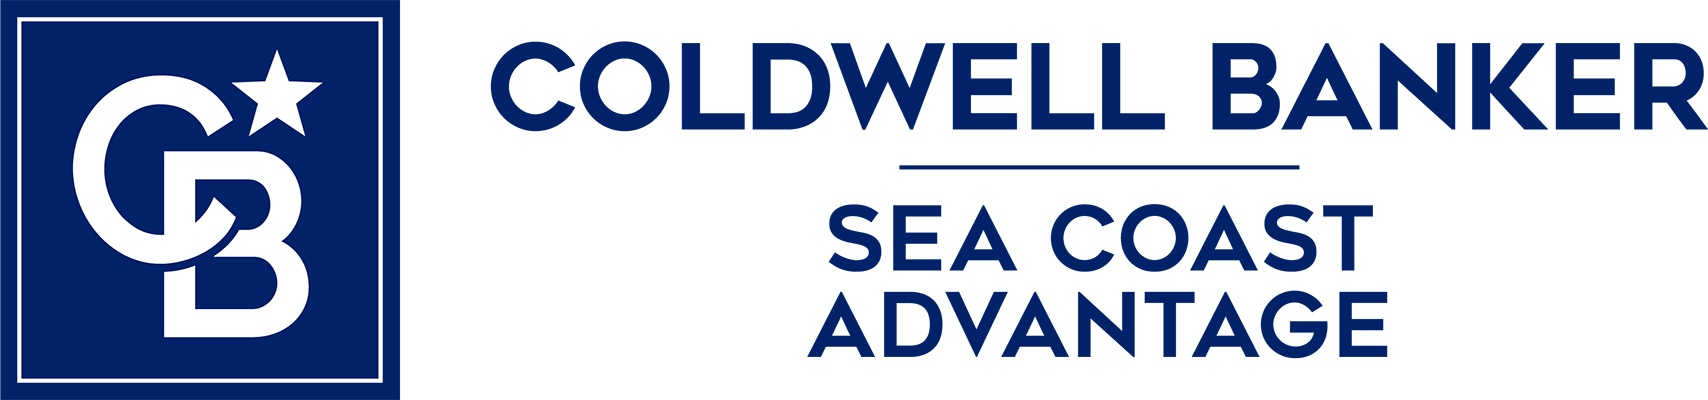 Dian Debose - Coldwell Banker Sea Coast Advantage Realty